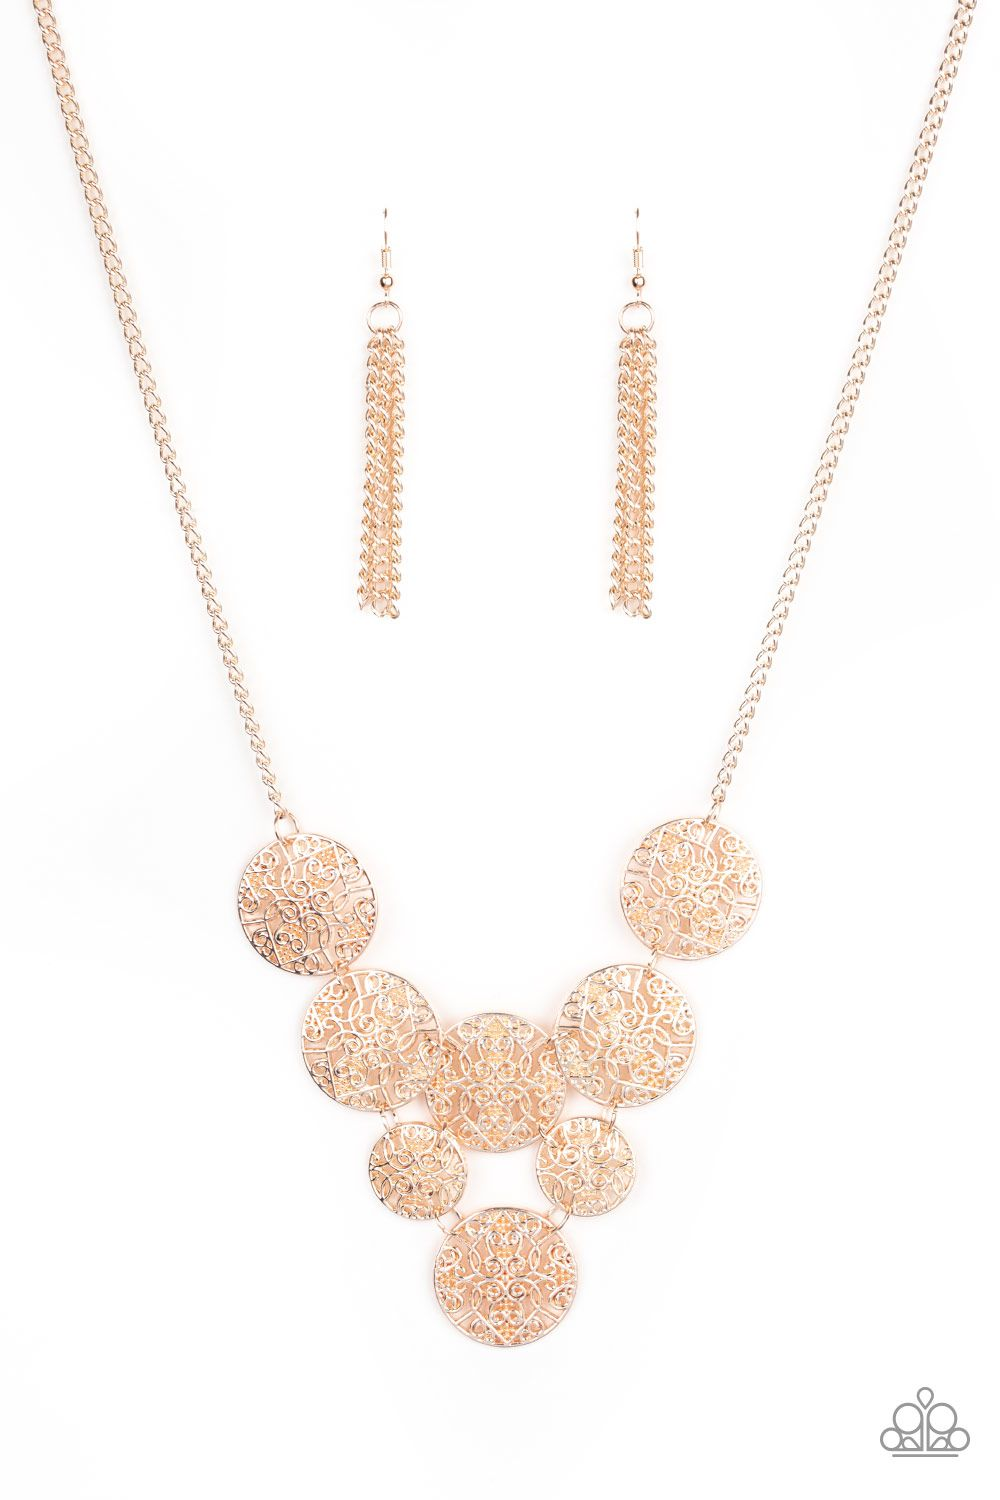 Malibu Idol Rose Gold In 2020 Paparazzi Accessories Jewelry Gold Necklace Set Rose Gold Necklace